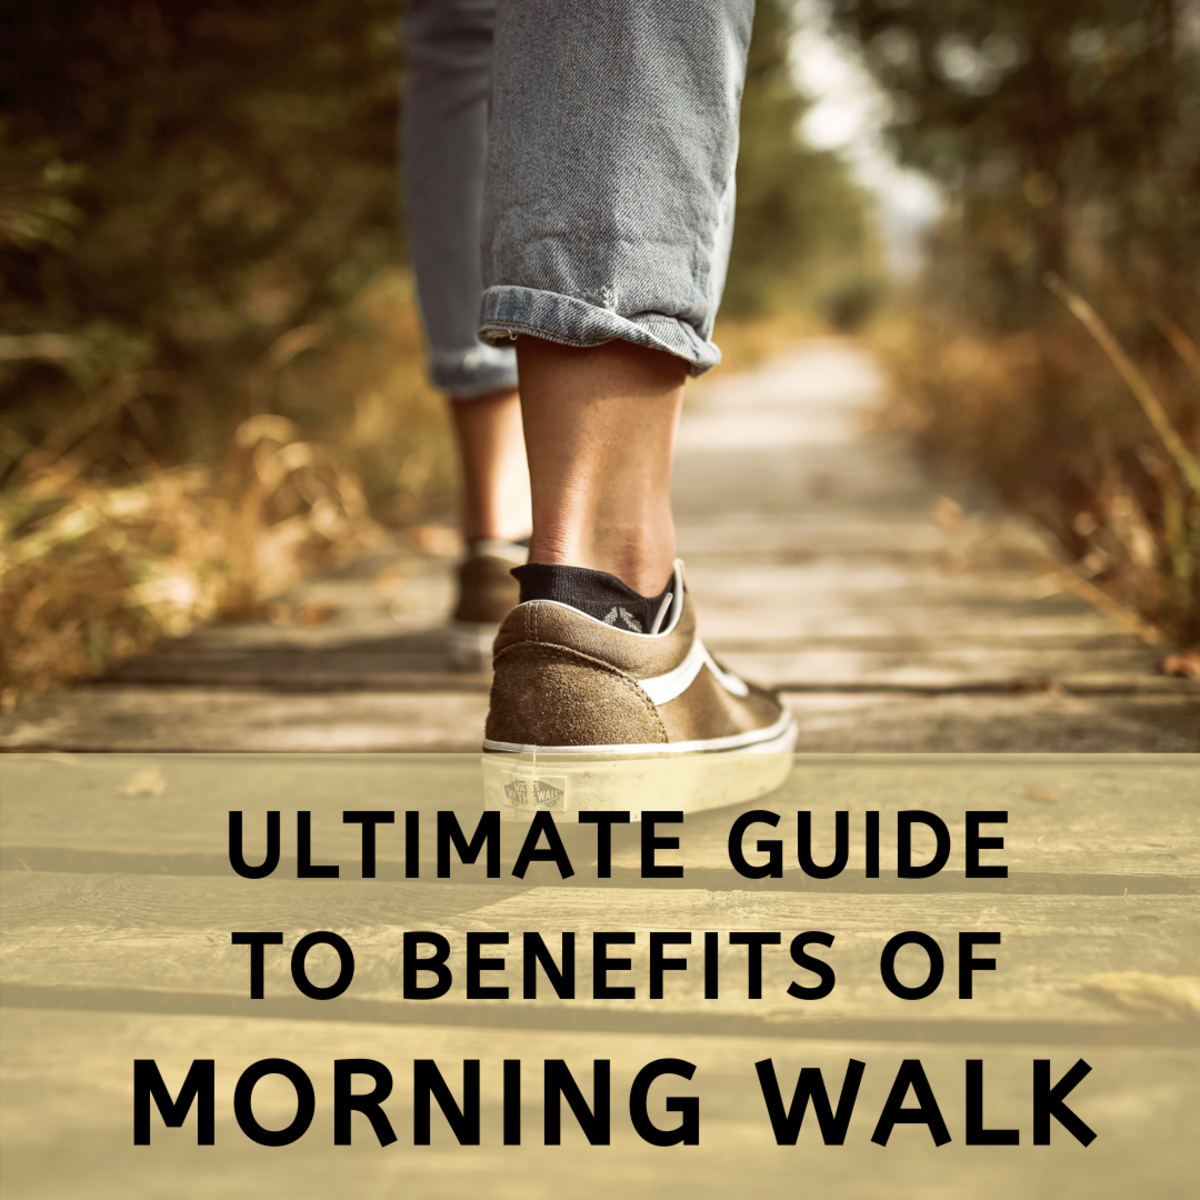 The ultimate guide to the benefits of morning walk